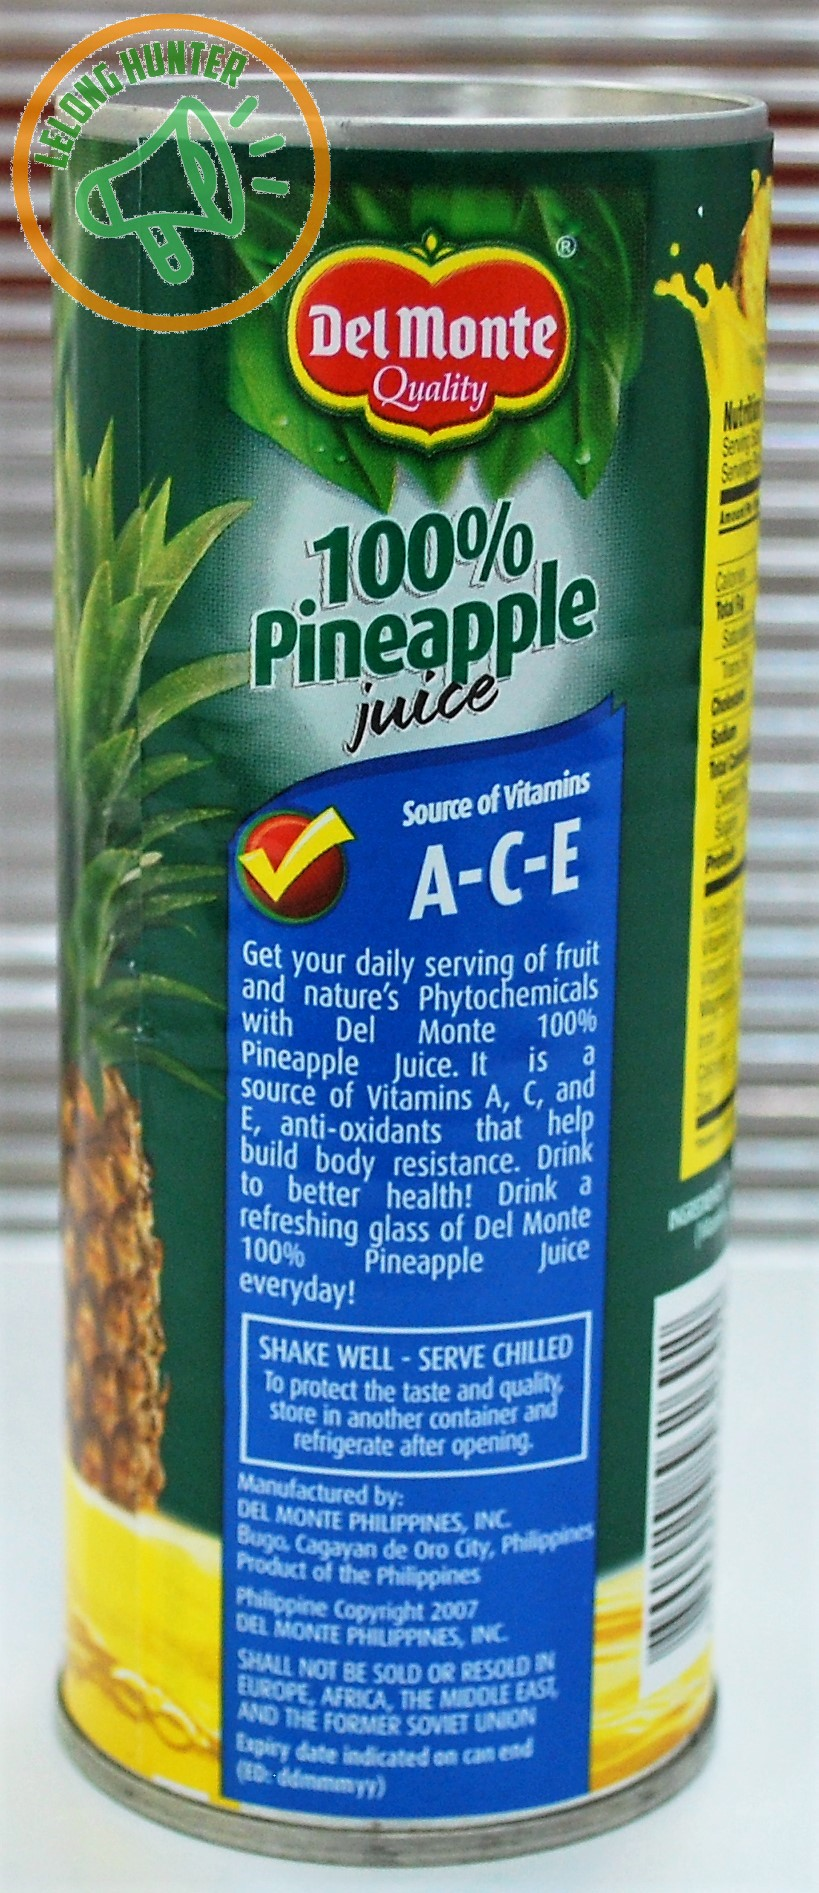 Every Need Want Day Del Monte Sweet Chilli Sauce 340 Ml In 240 The Pineapple Juice Can Yield 133 Kcal Of Energy 02 G Protein 342 Carbohydrate 93 Mg Sodium